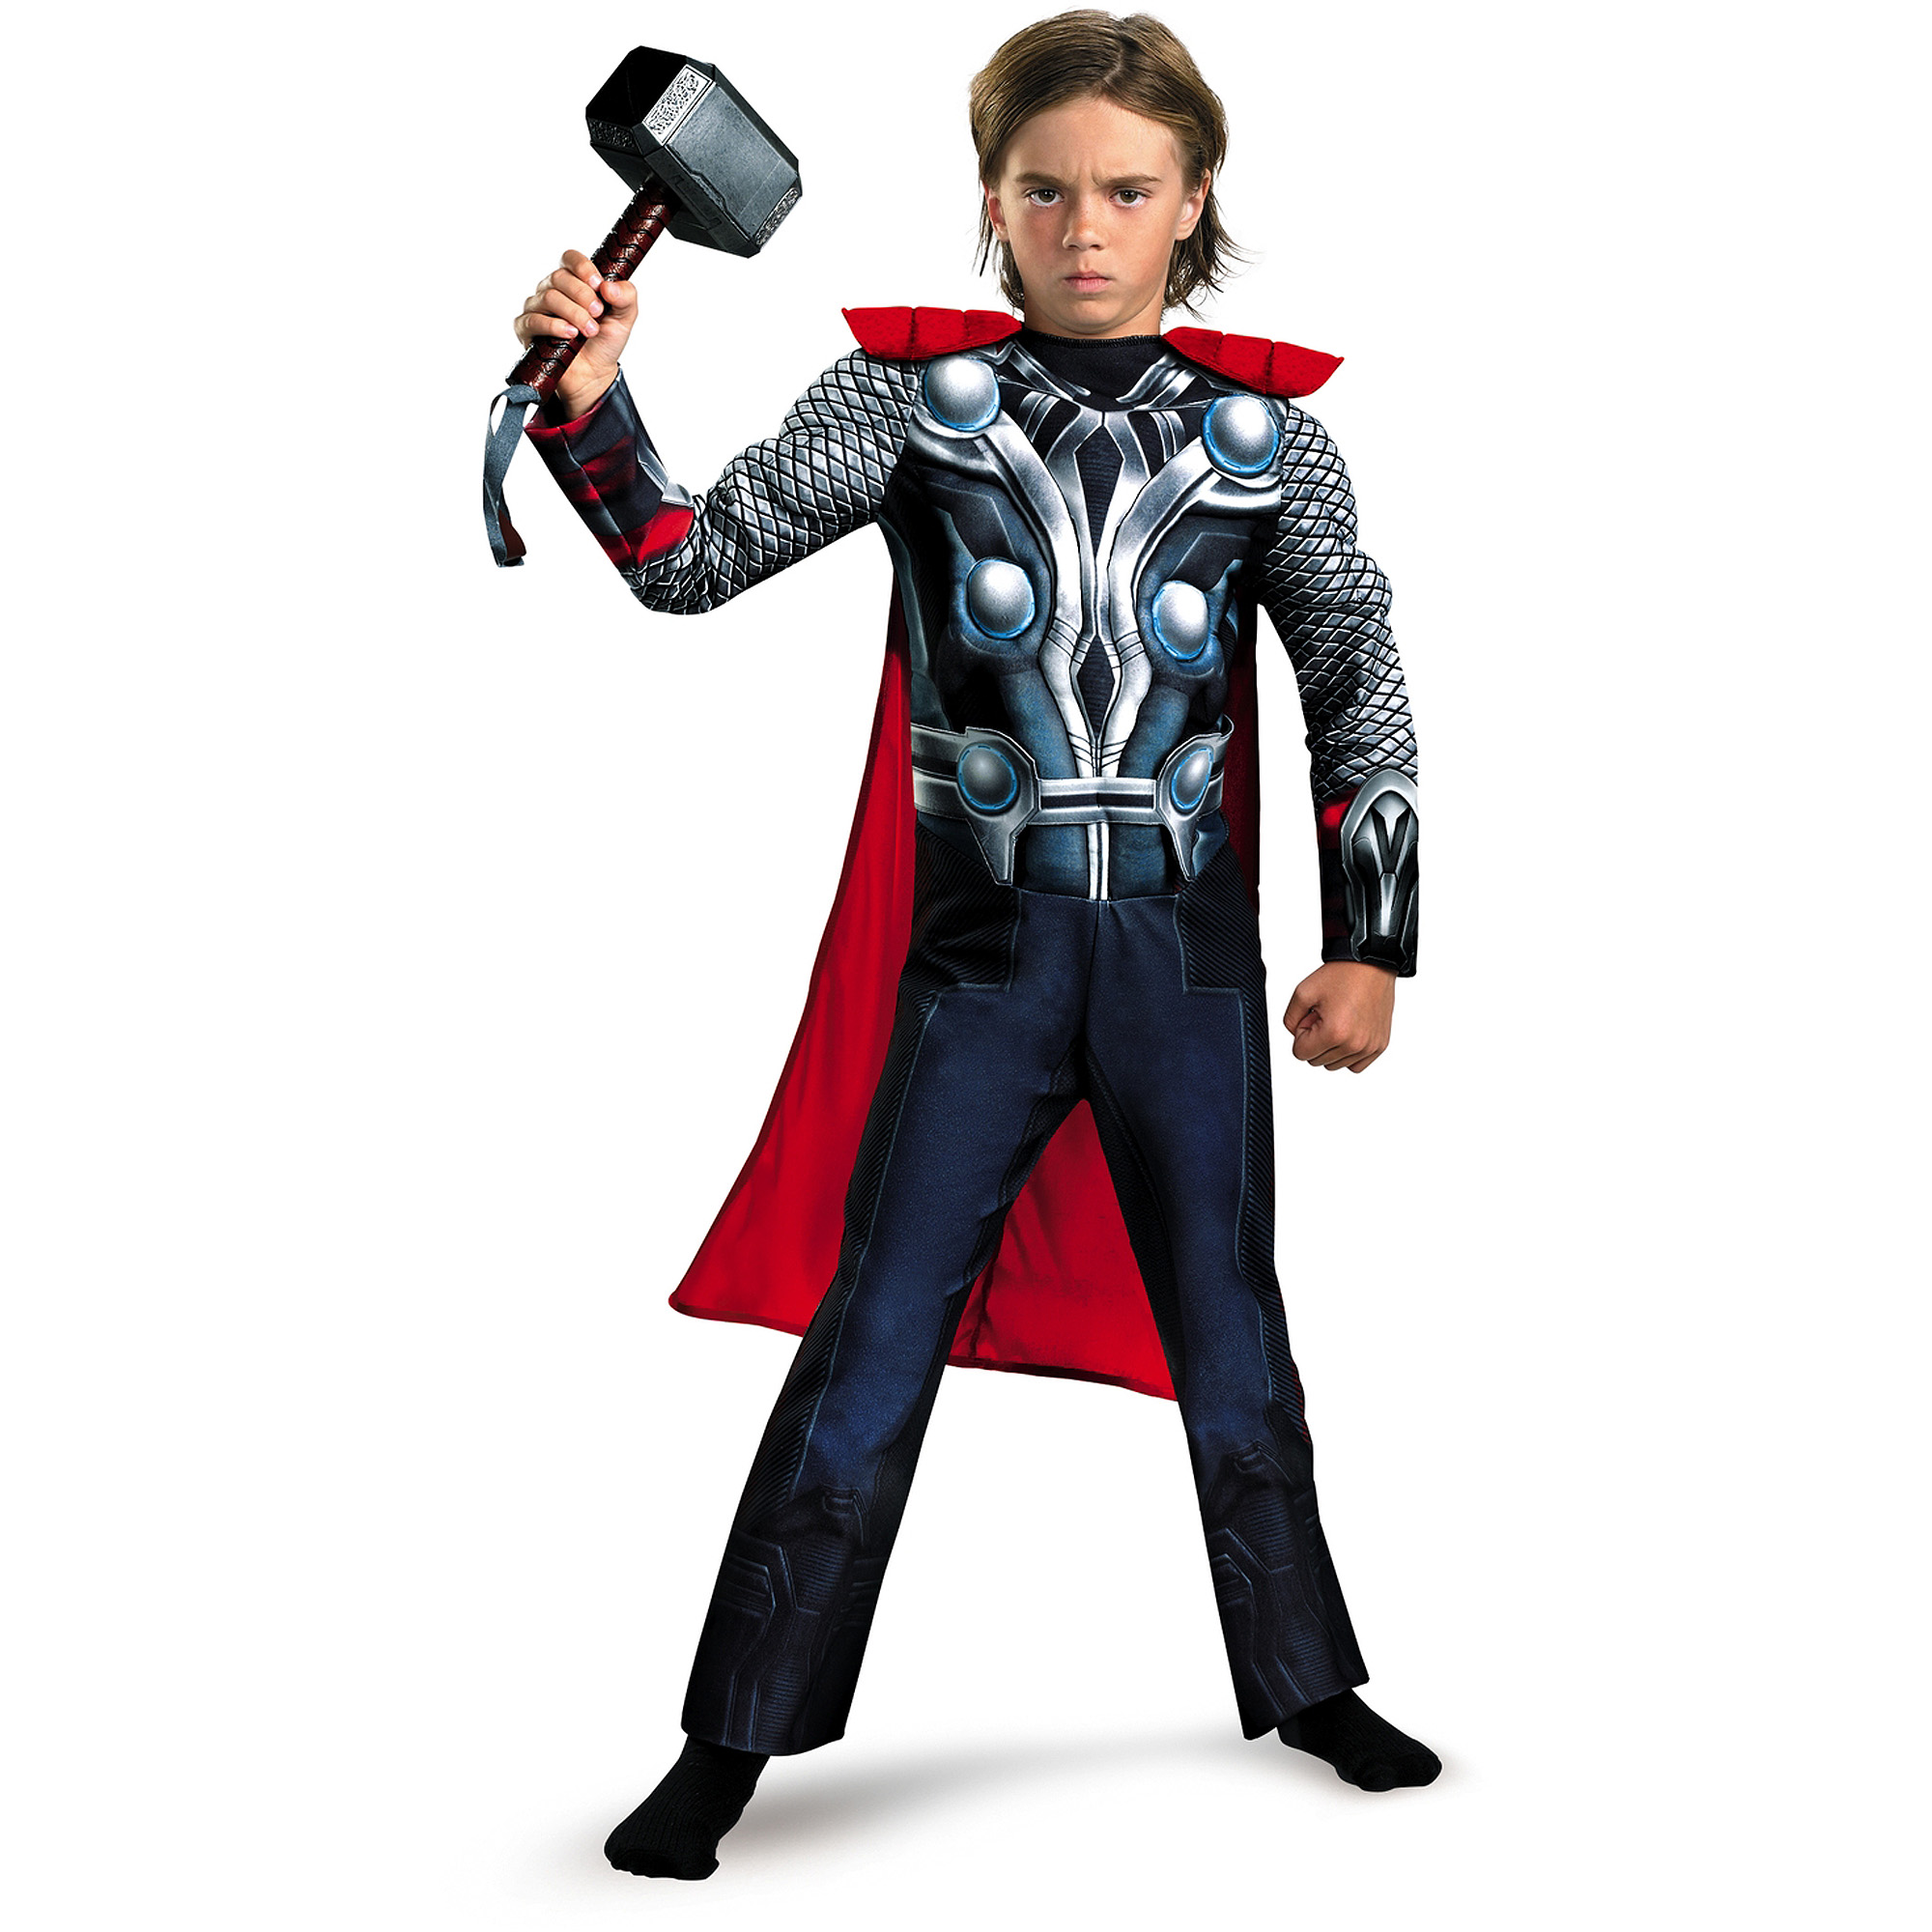 Thor Muscle Child Dress Up Costume  sc 1 st  Walmart & Thor Muscle Child Dress Up Costume - Walmart.com